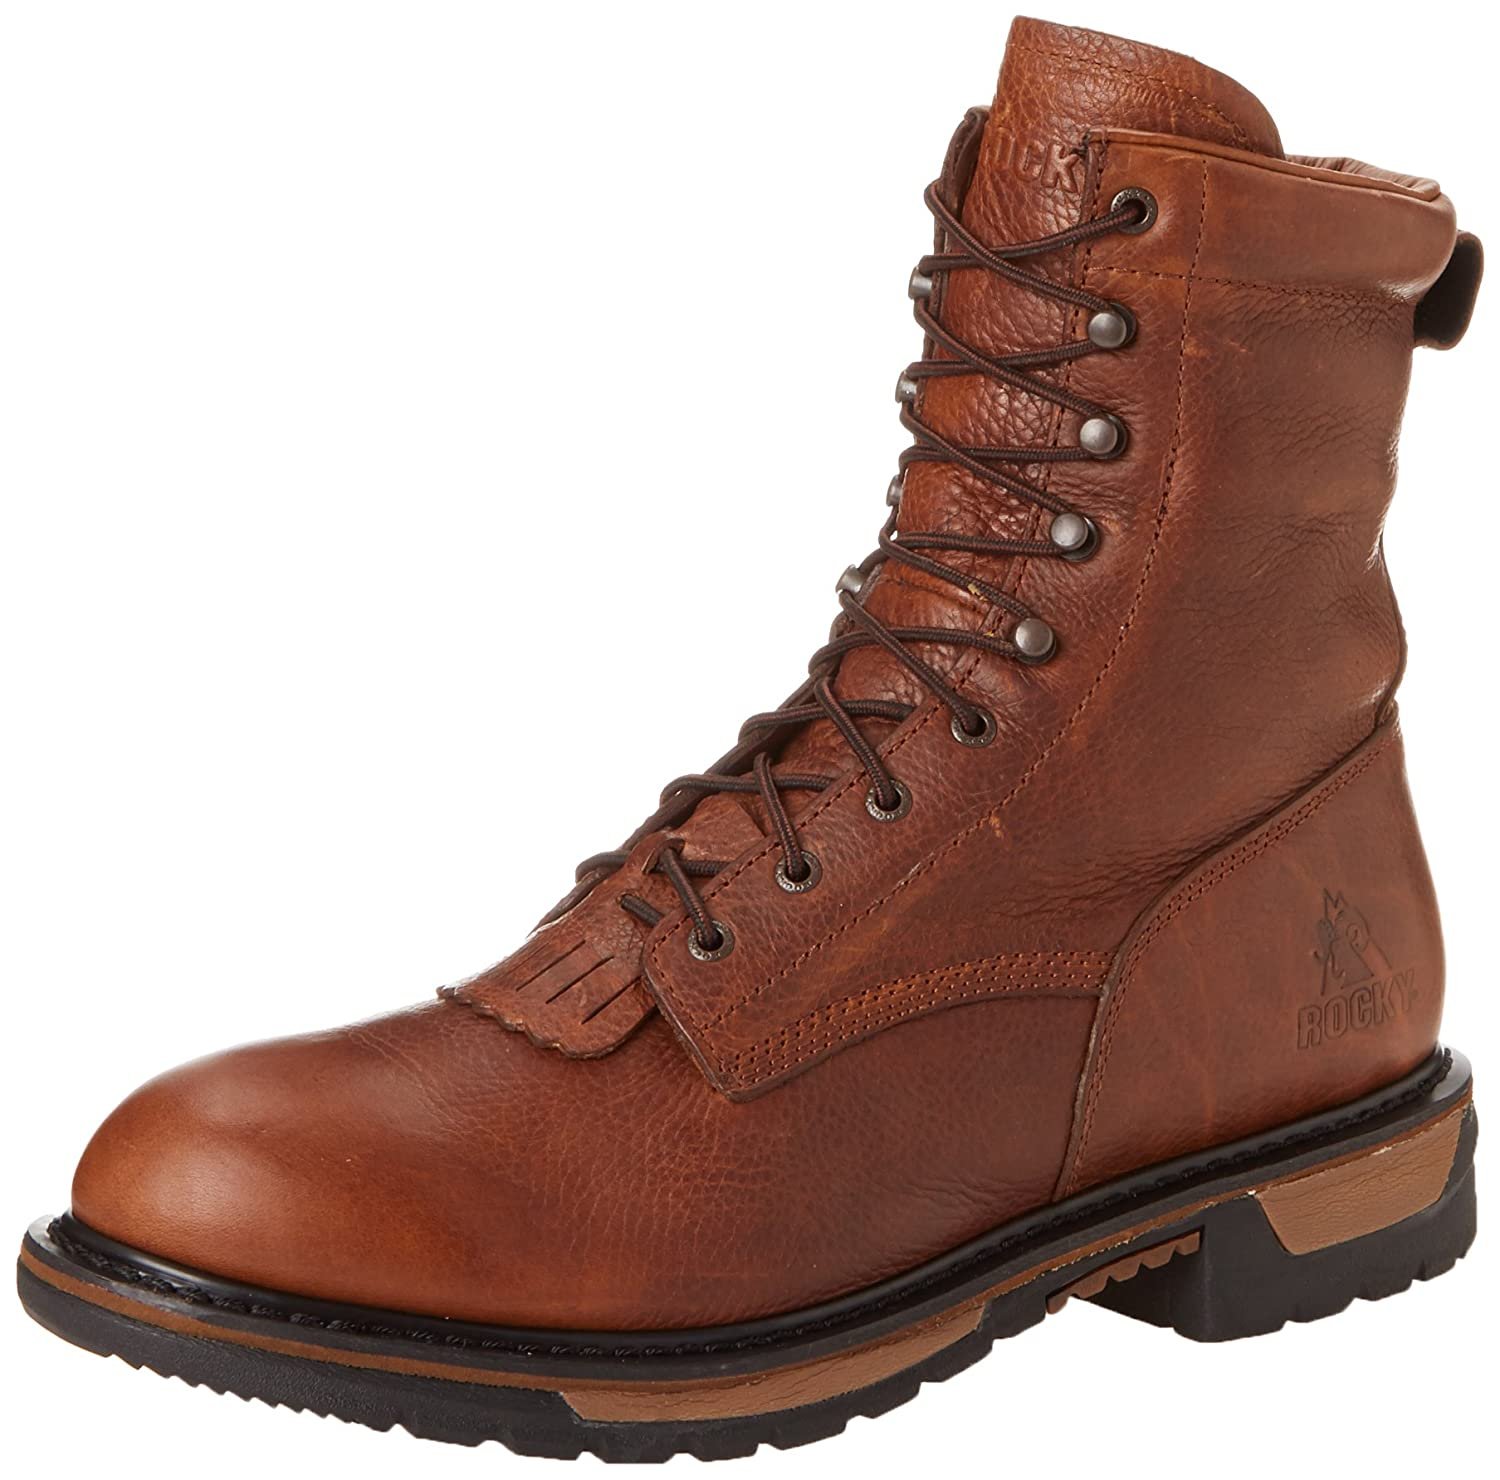 Amazon.com | Rocky Original Ride Lacer Waterproof Western Boots |  Industrial & Construction Boots